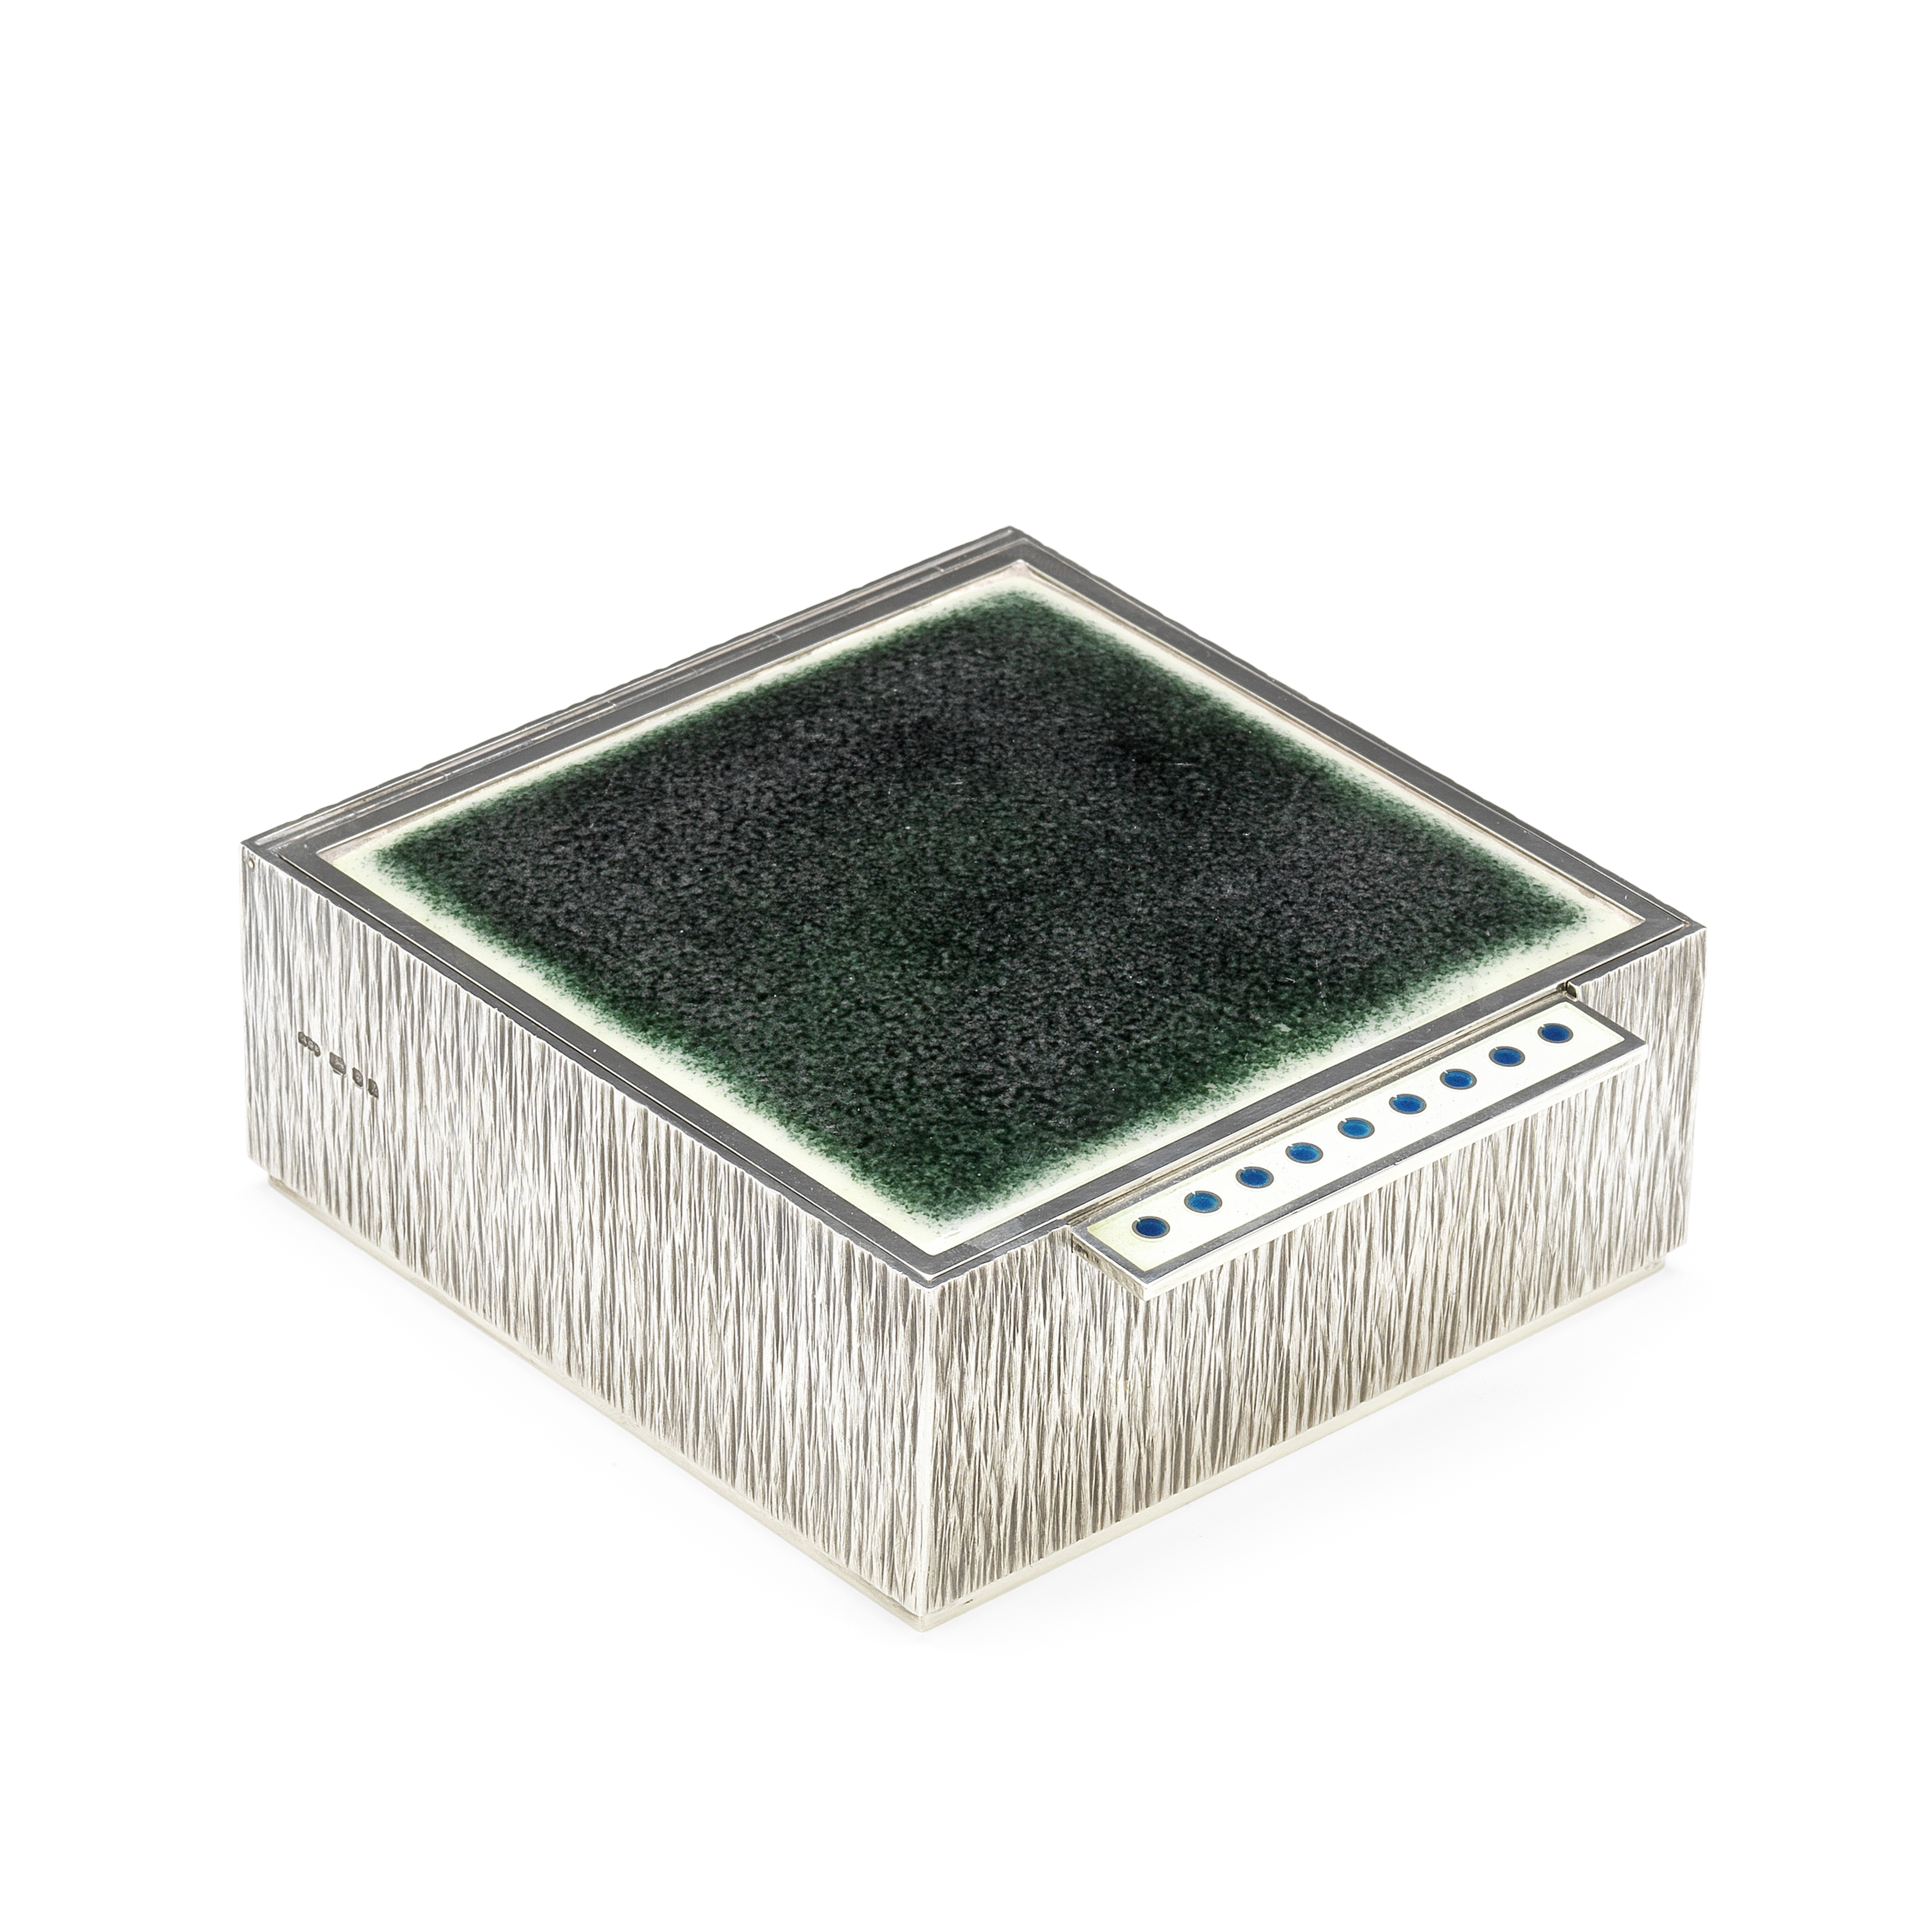 GERALD BENNEY: A rare silver and enamelled box London 1970, also stamped 'GERALD BENNEY LONDON', ...